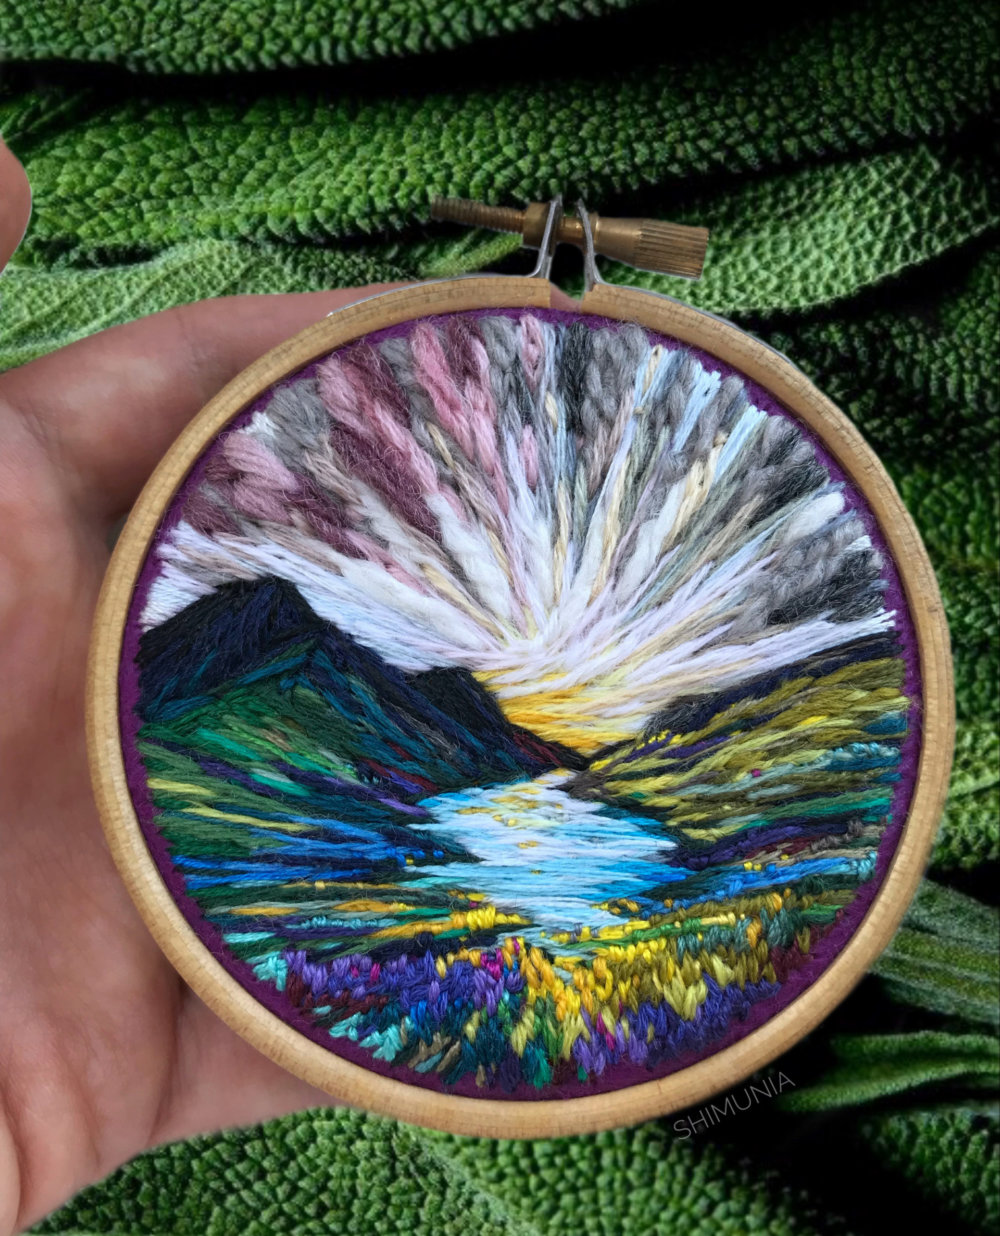 Lush Embroidery Hoop Art Of Landscapes In Vivid Colors By Vera Shimunia 3